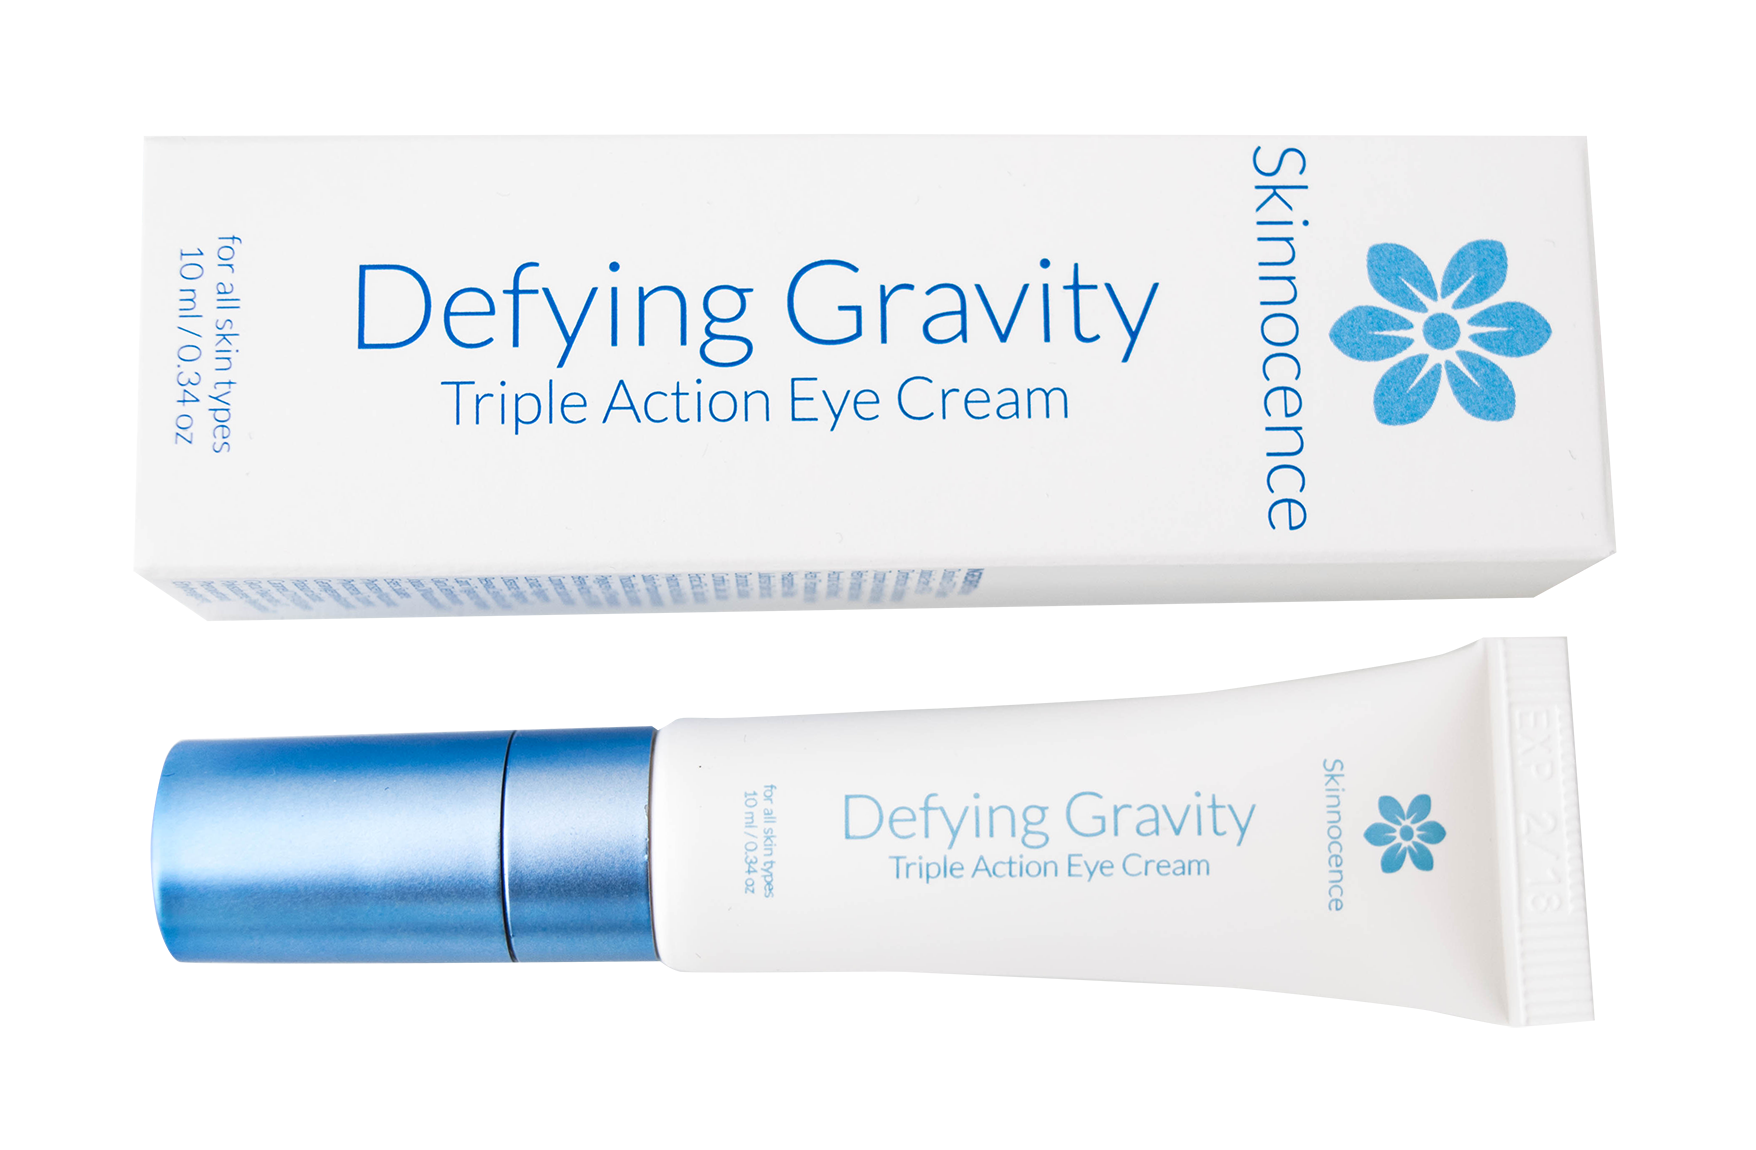 Defying-Gravity-eye-Cream